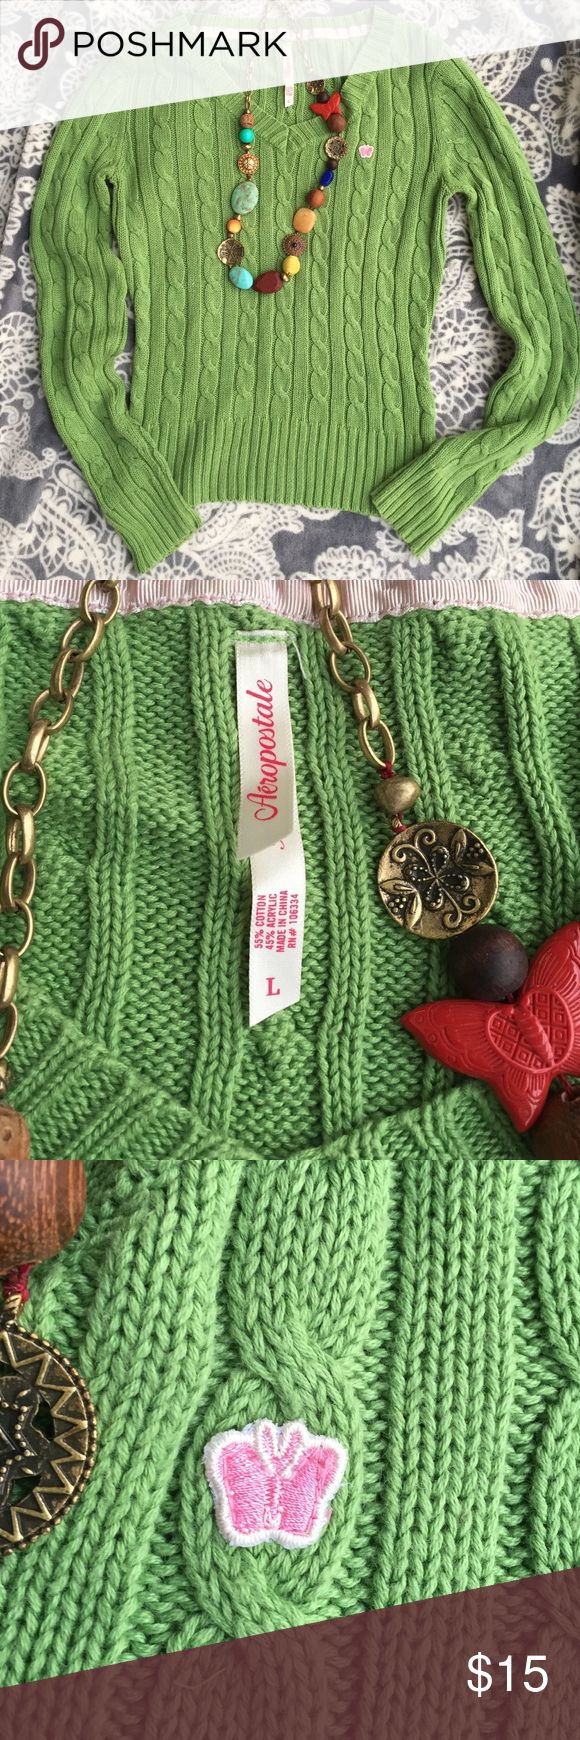 Aeropostale lime green sweater in large (juniors) Aeropostale lime green sweater in size large (juniors).... 🍓🍓🍓 check out pics for details Aeropostale Sweaters V-Necks